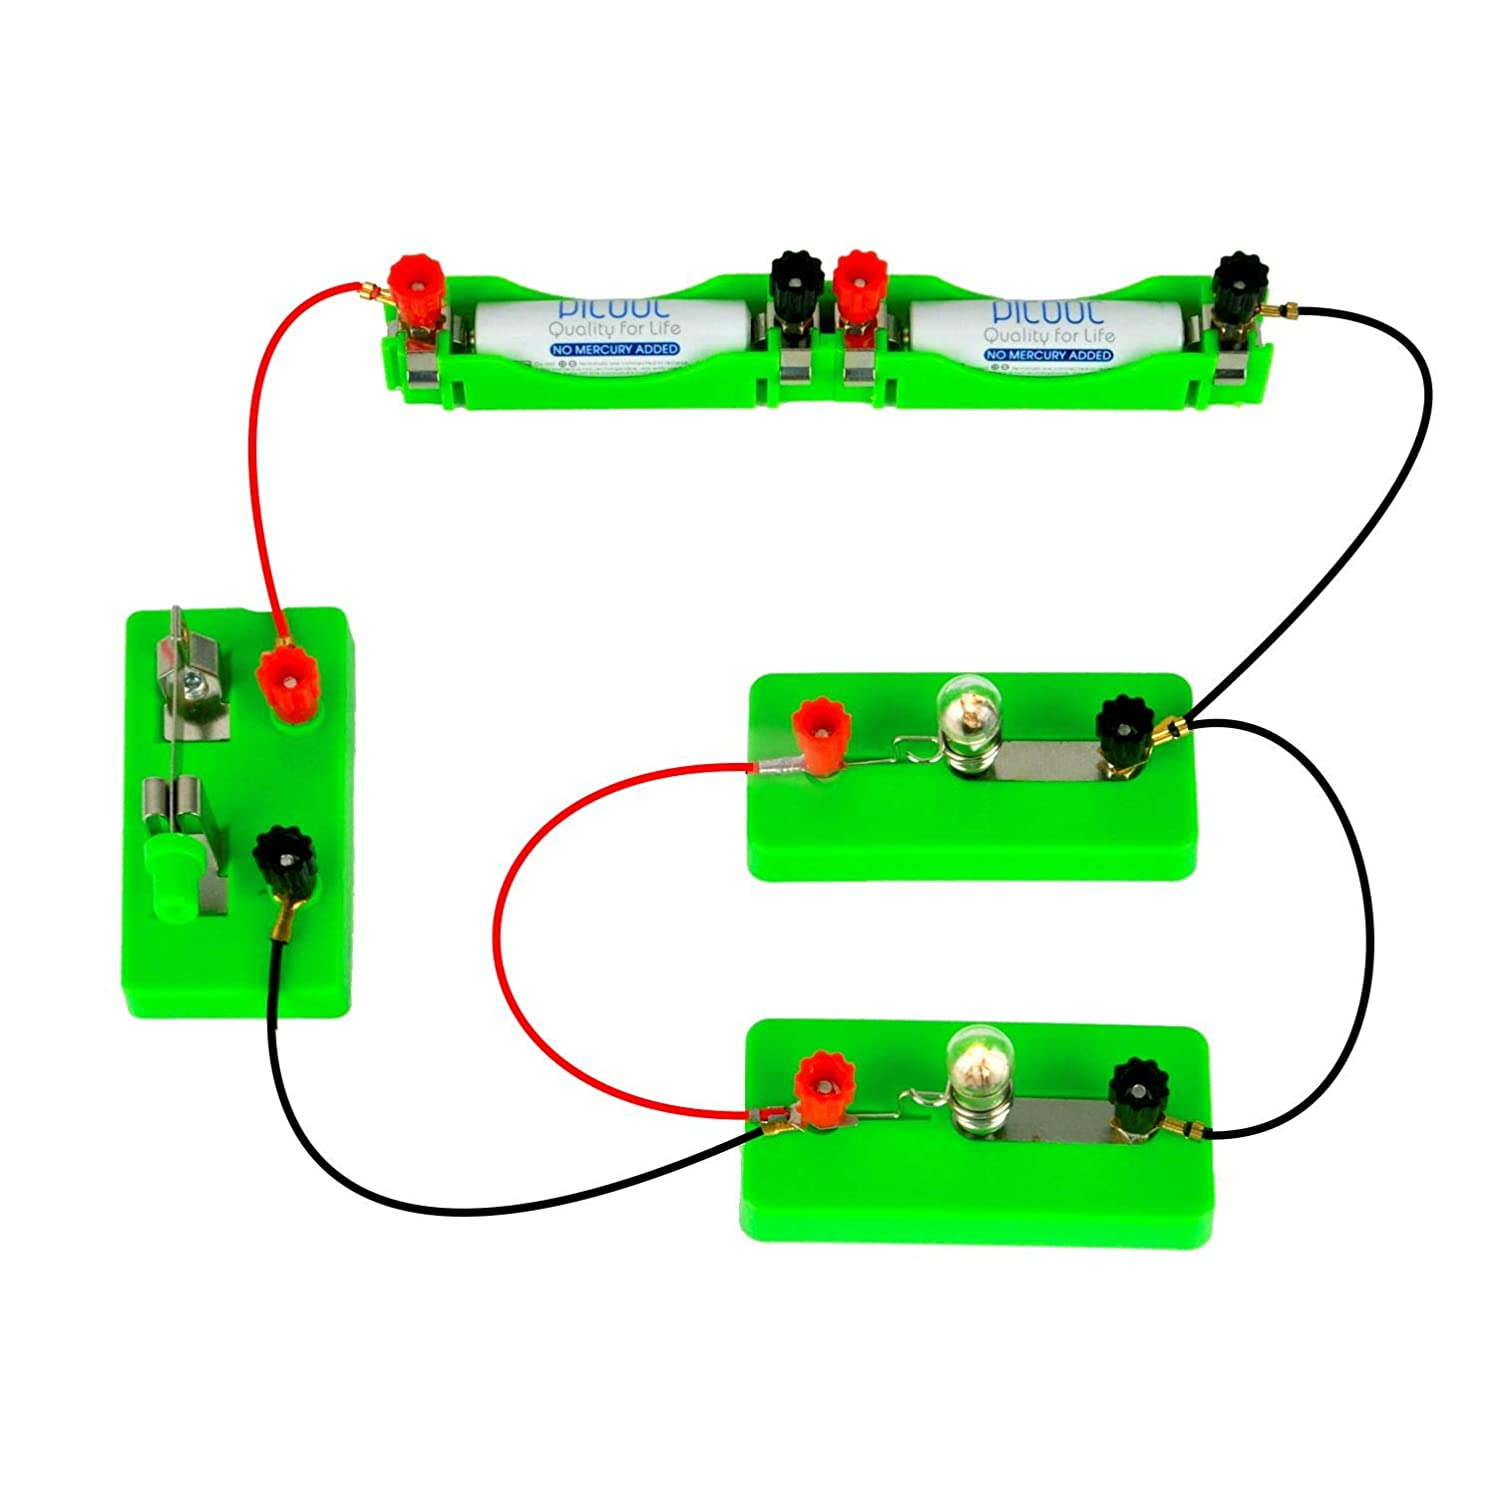 Osoyoo Electricity Science Kitseries Circuit Parallel Series And Circuiteducation Learning Toysscience Physical